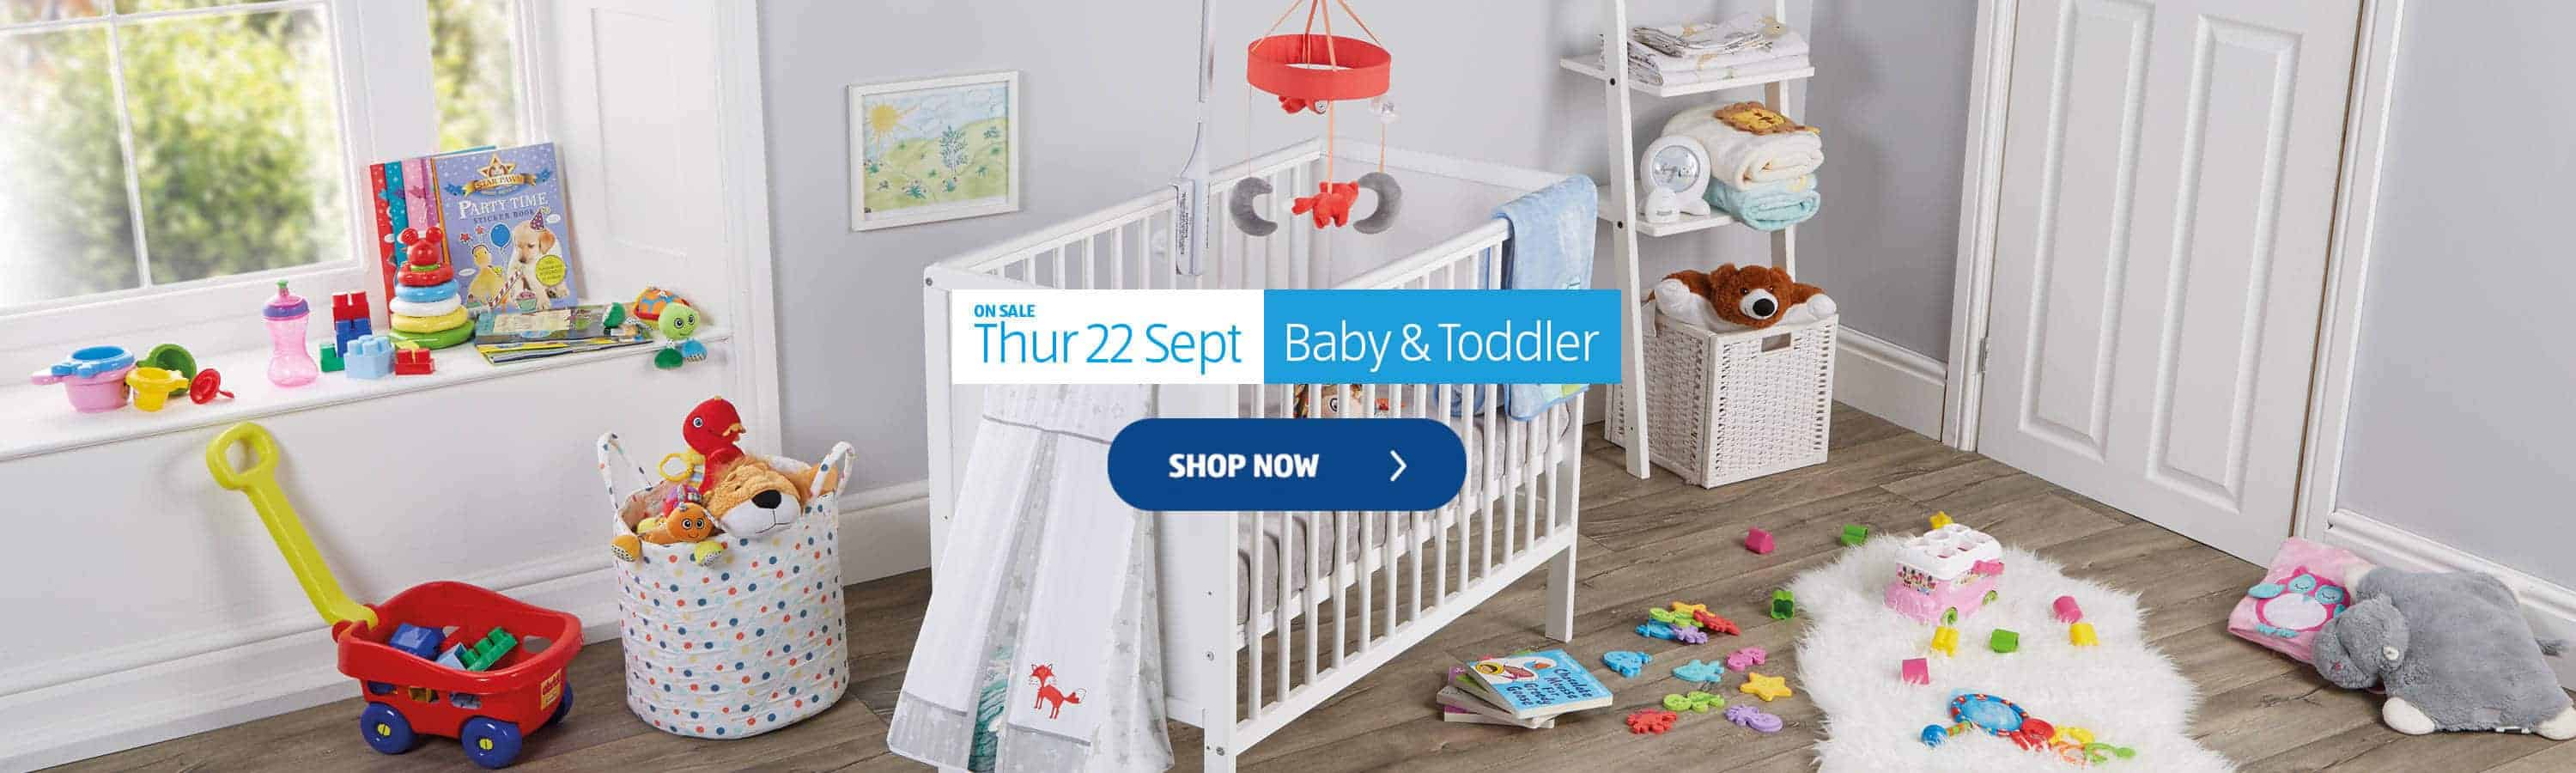 Aldi Baby Range – Specialbuys available 22nd September